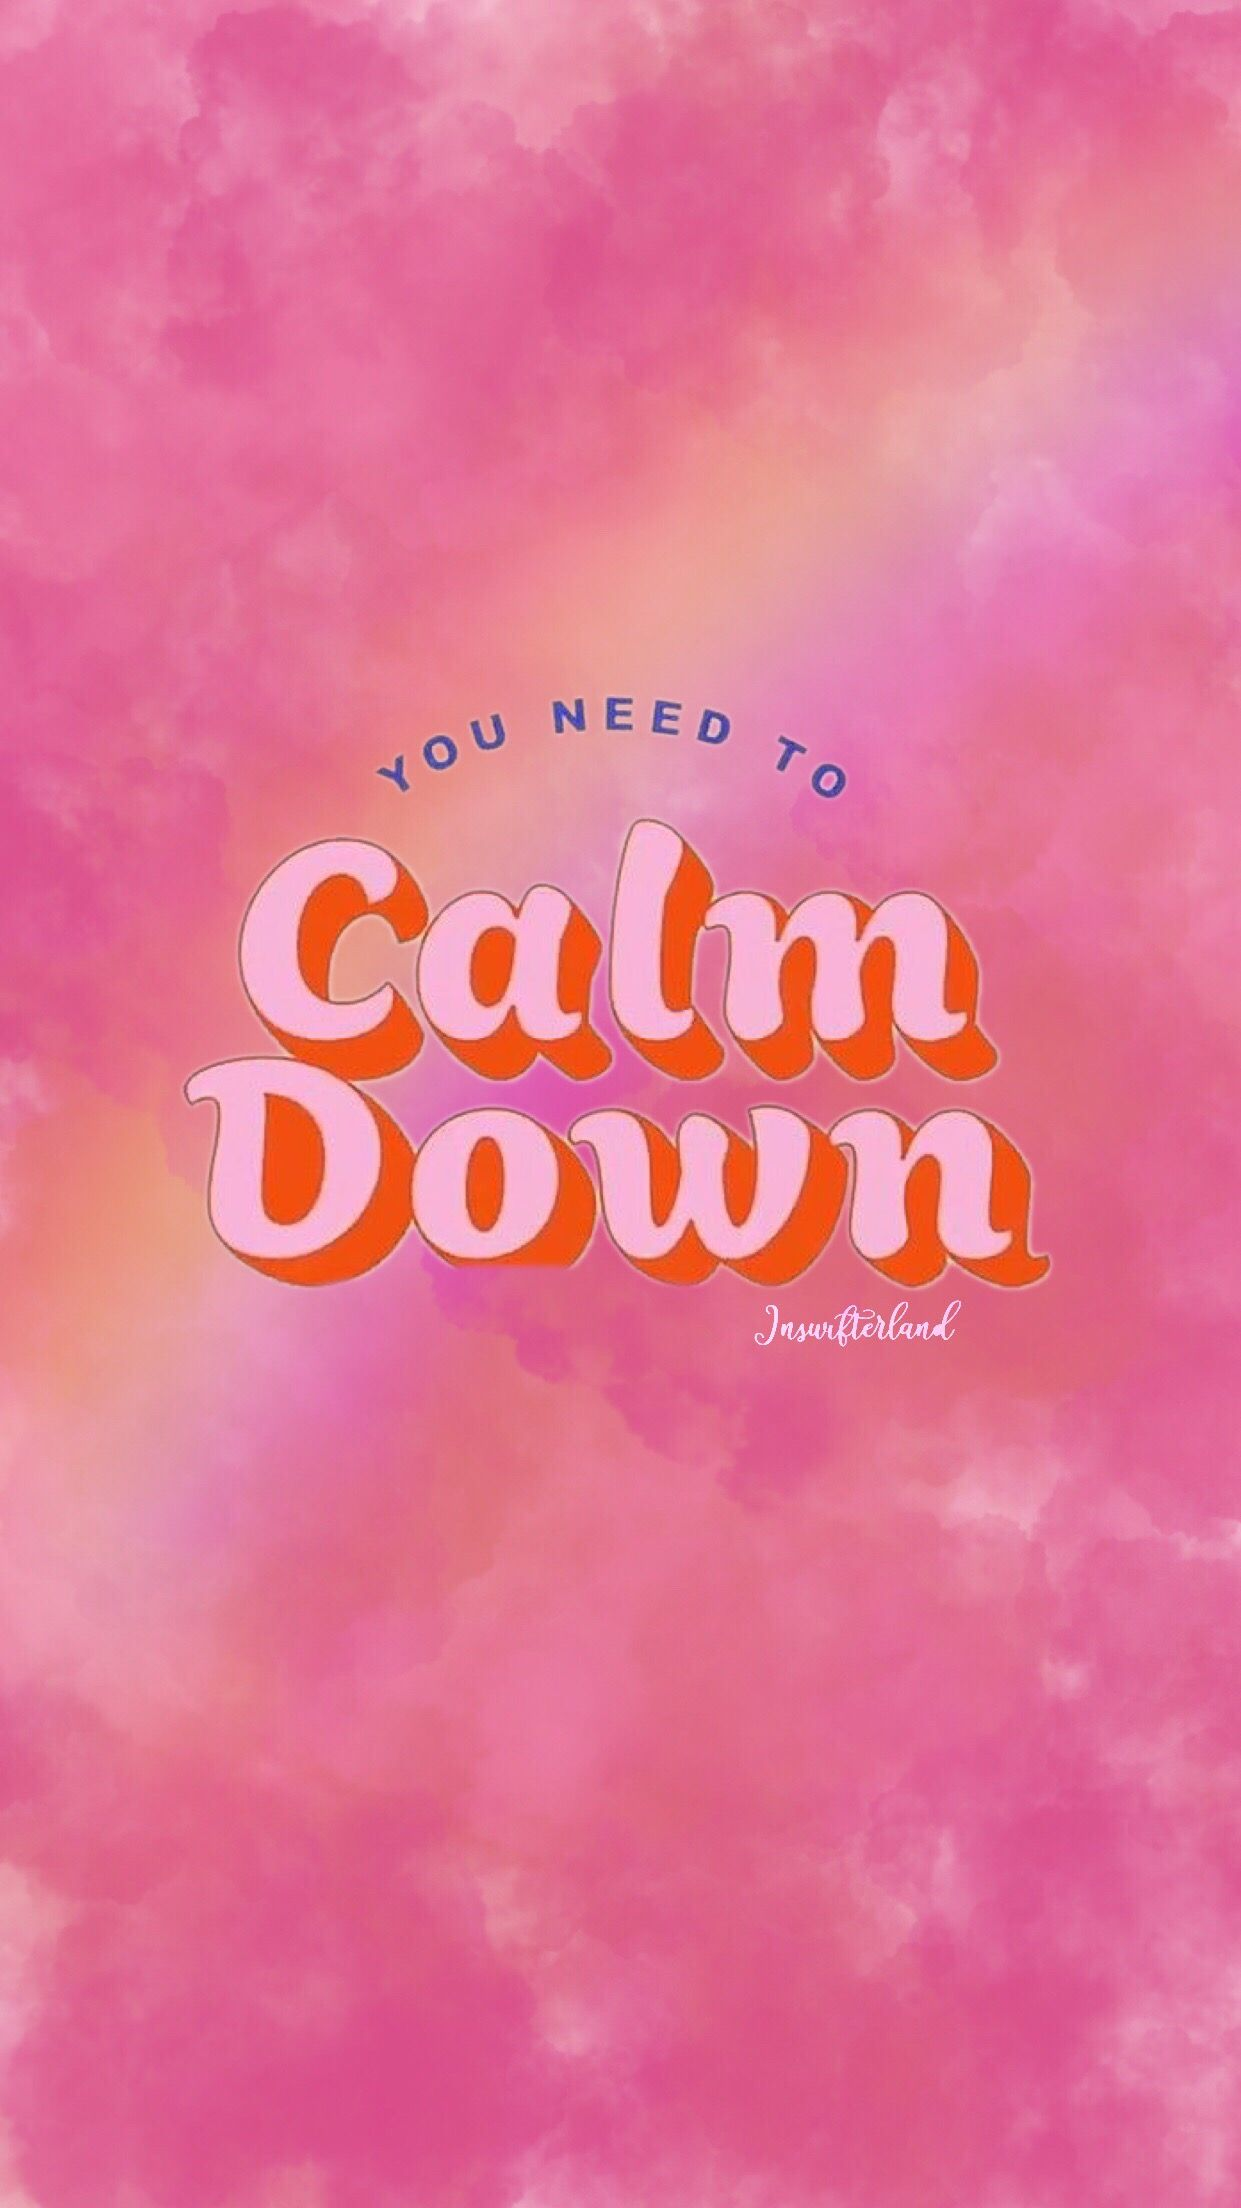 You Need To Calm Down Wallpaper Taylorswift Wallpaper